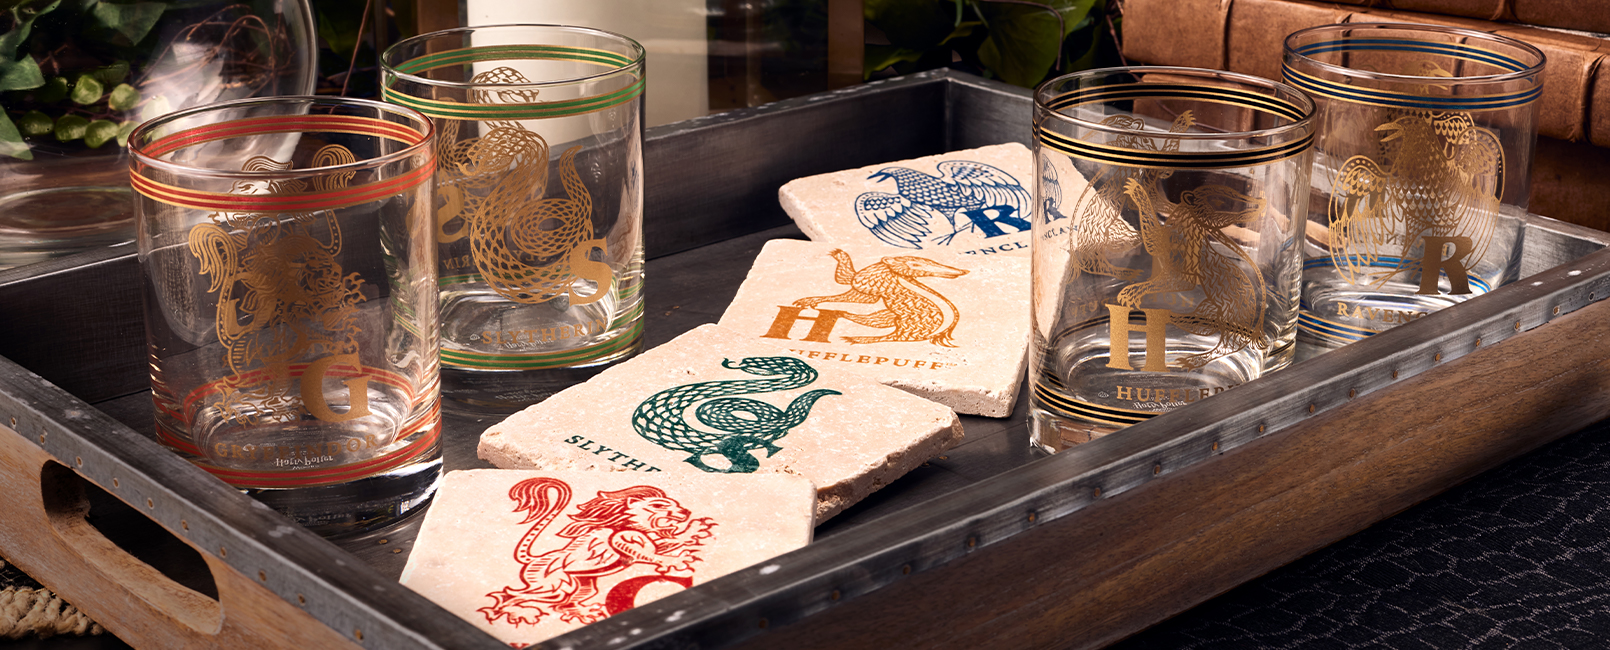 Gryffindor™, Slytherin™, Hufflepuff™ and Ravenclaw™ Glass Tumblers with Travertine Coasters